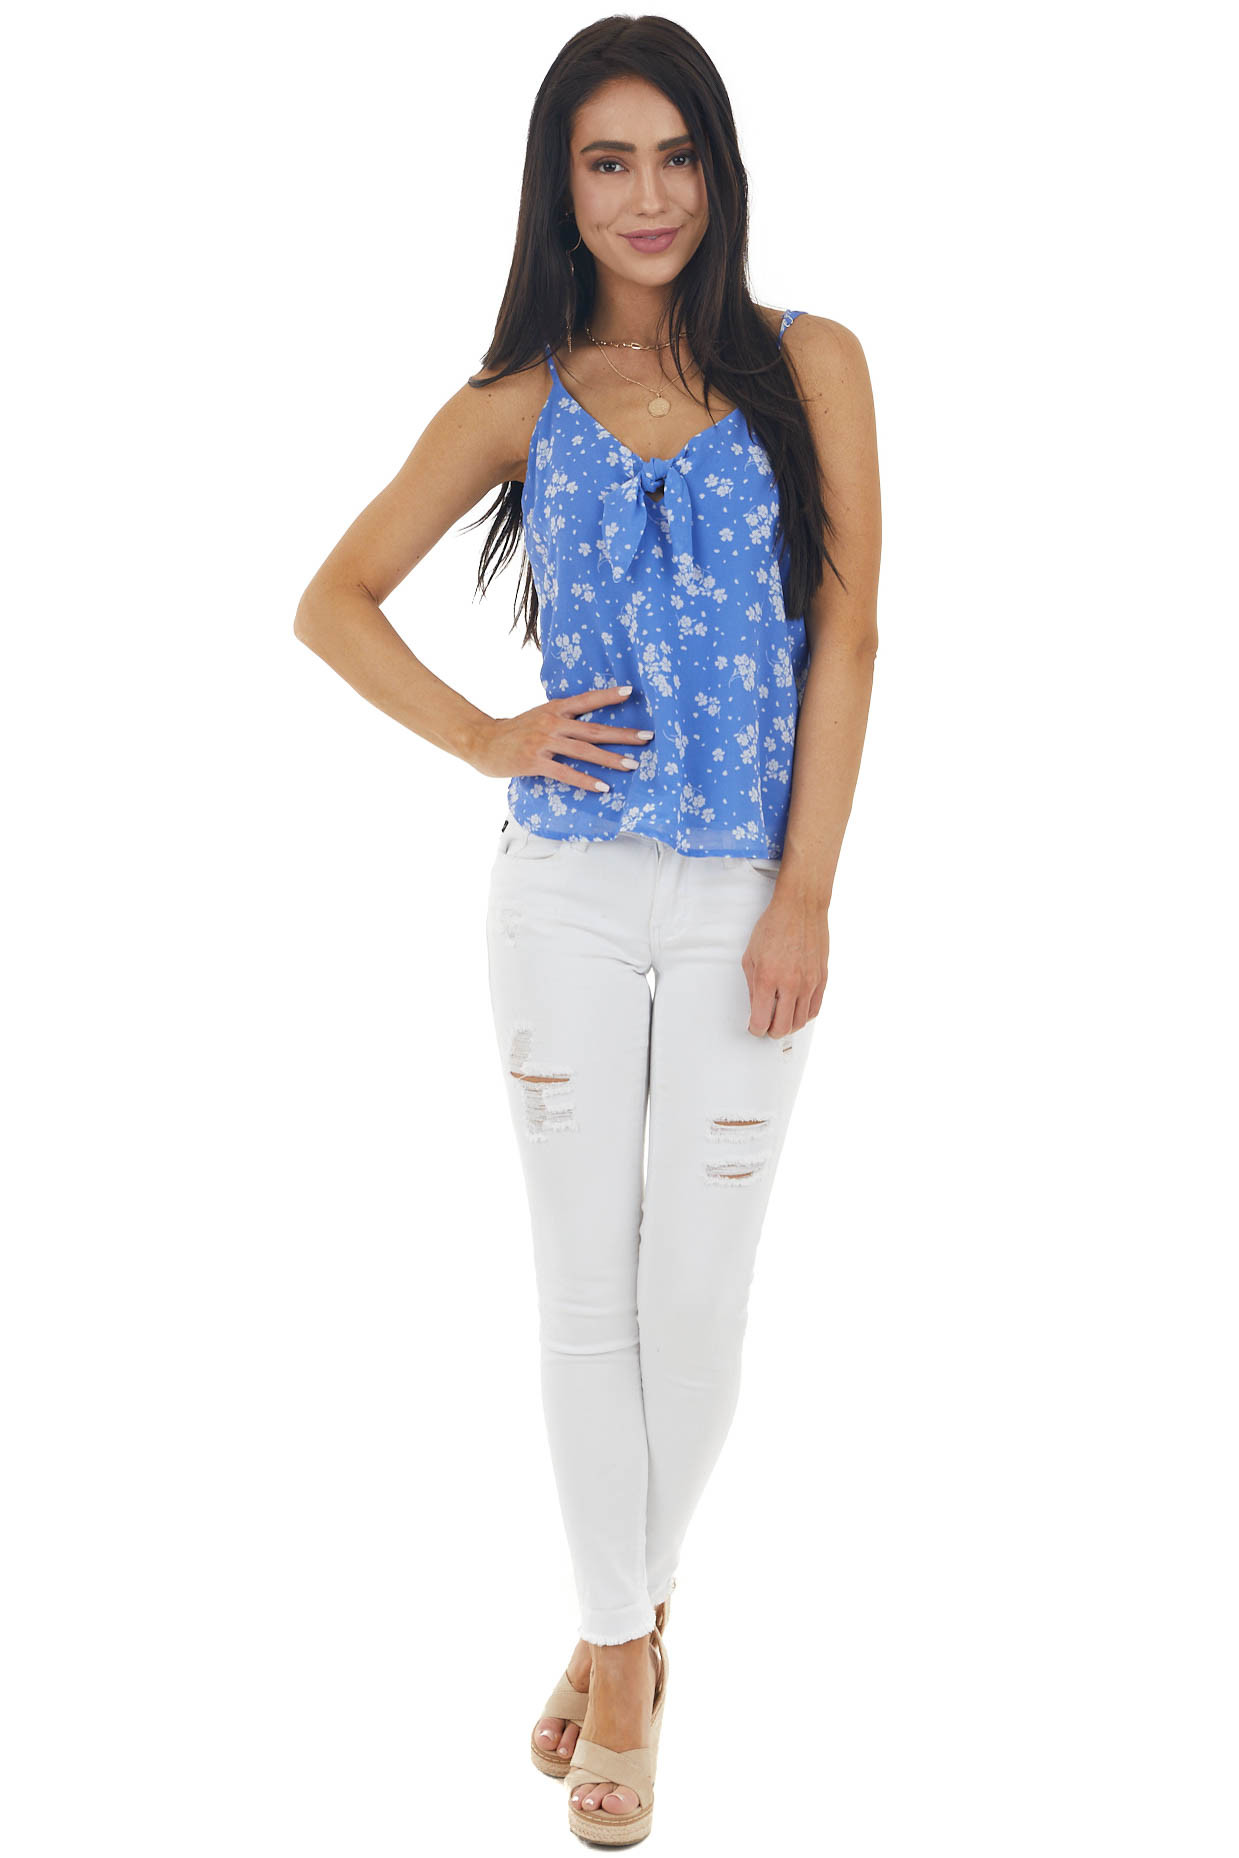 Cornflower Floral Print Sleeveless Blouse with Tie Detail